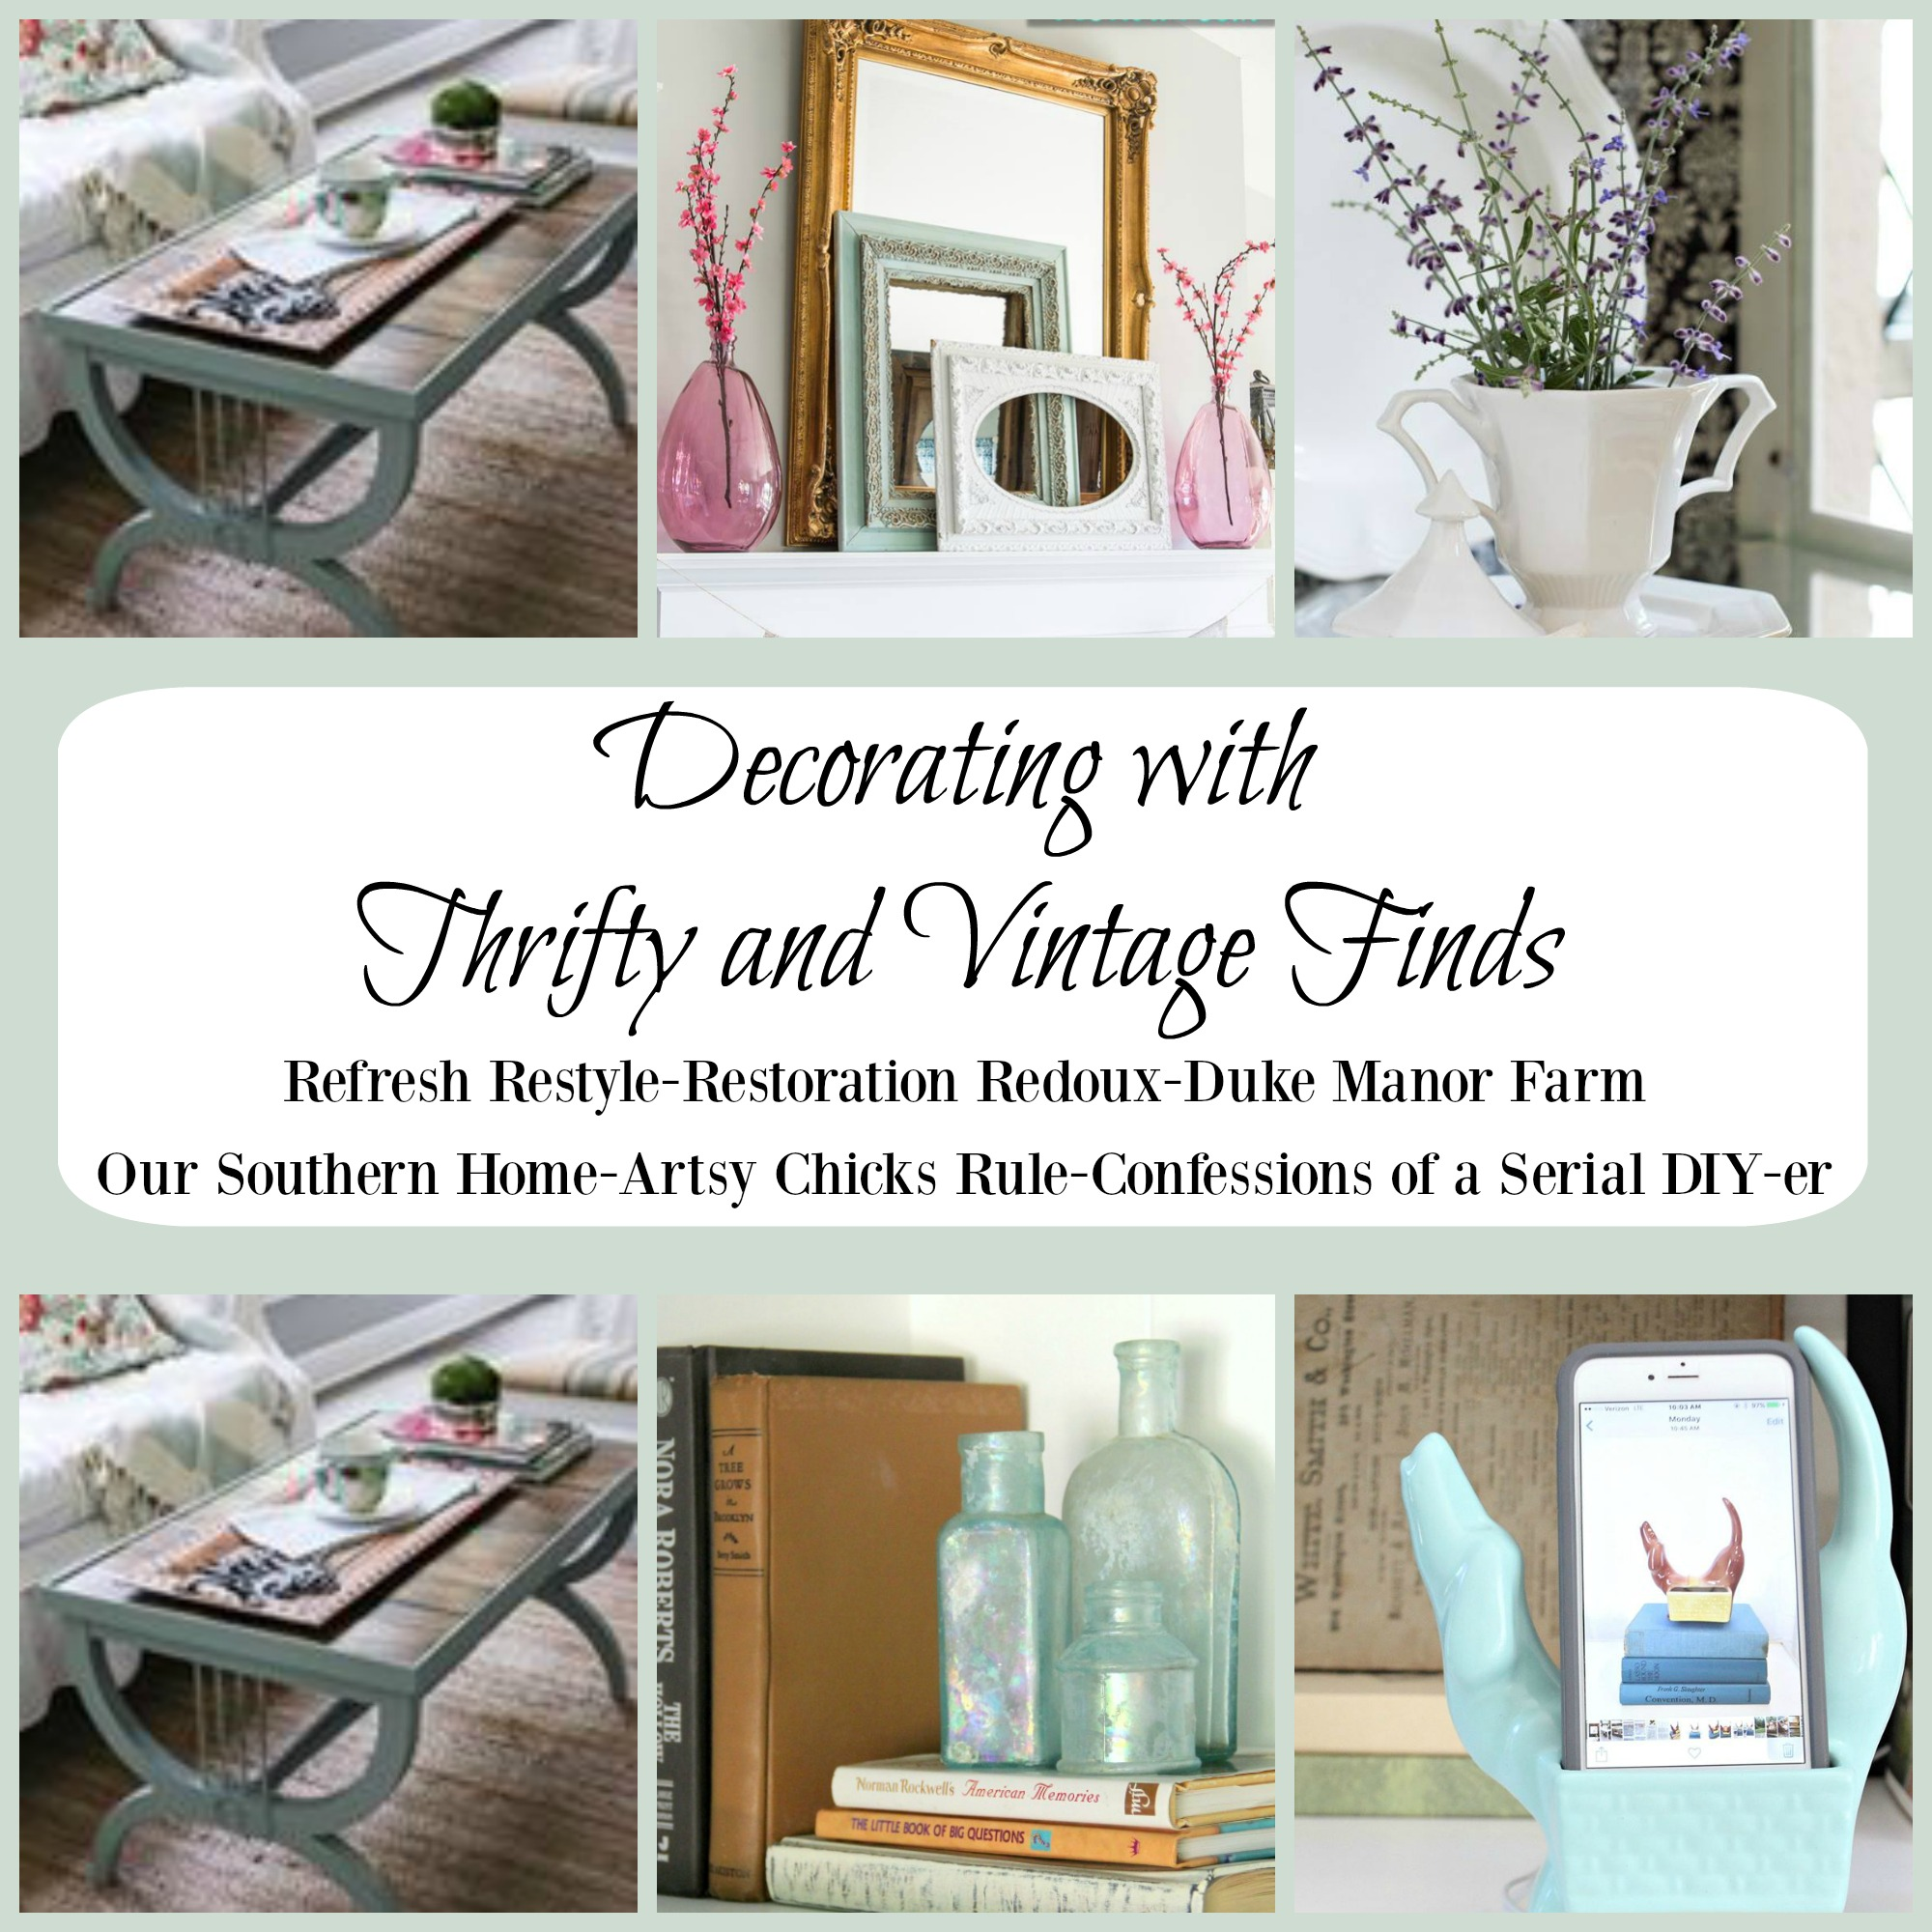 Decorating with Thrifty and Vintage Finds